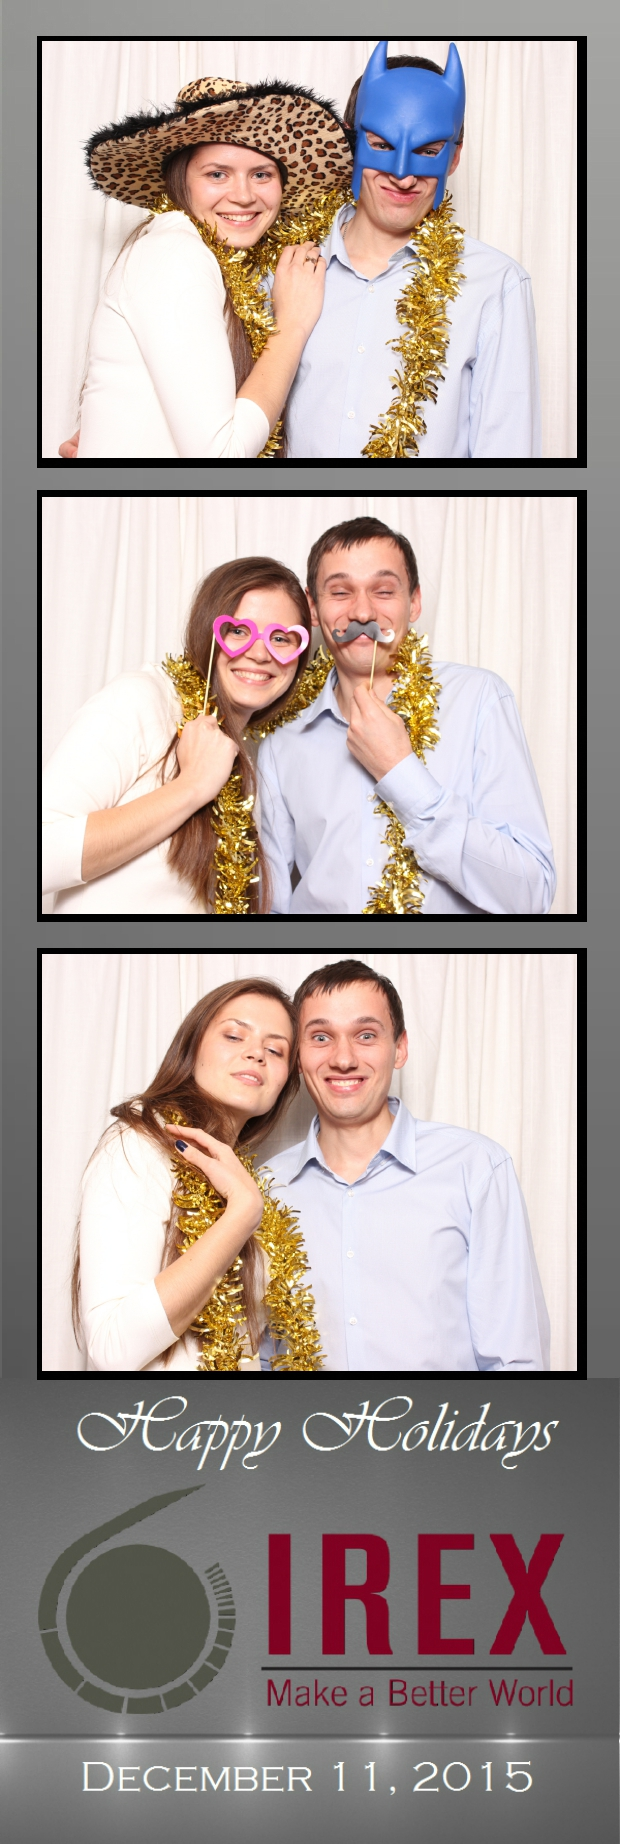 Guest House Events Photo Booth Strips IREX (60).jpg